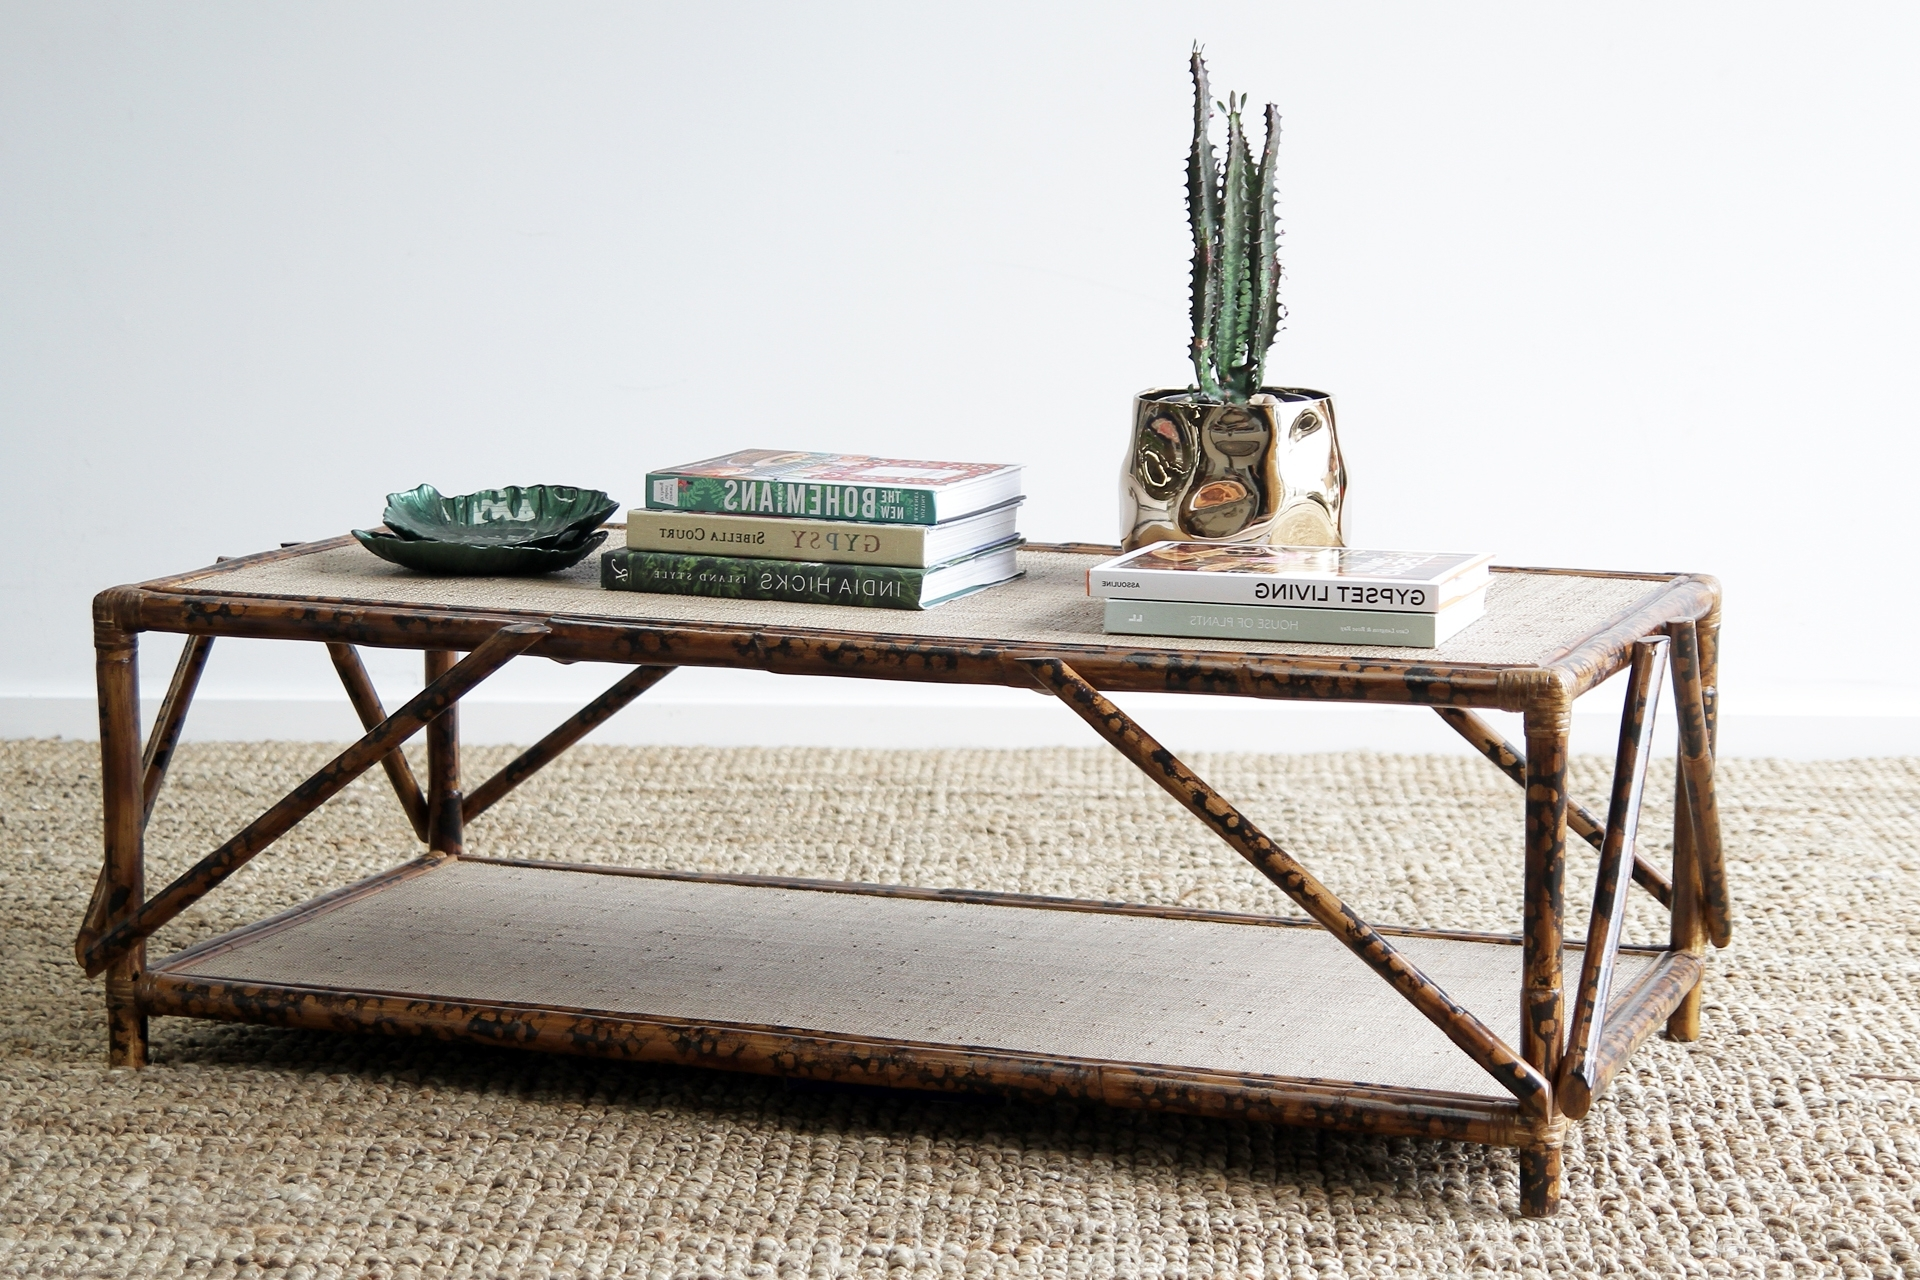 Naturally Cane Rattan And Wicker Furniture Inside Latest Cacti Brass Coffee Tables (View 15 of 20)